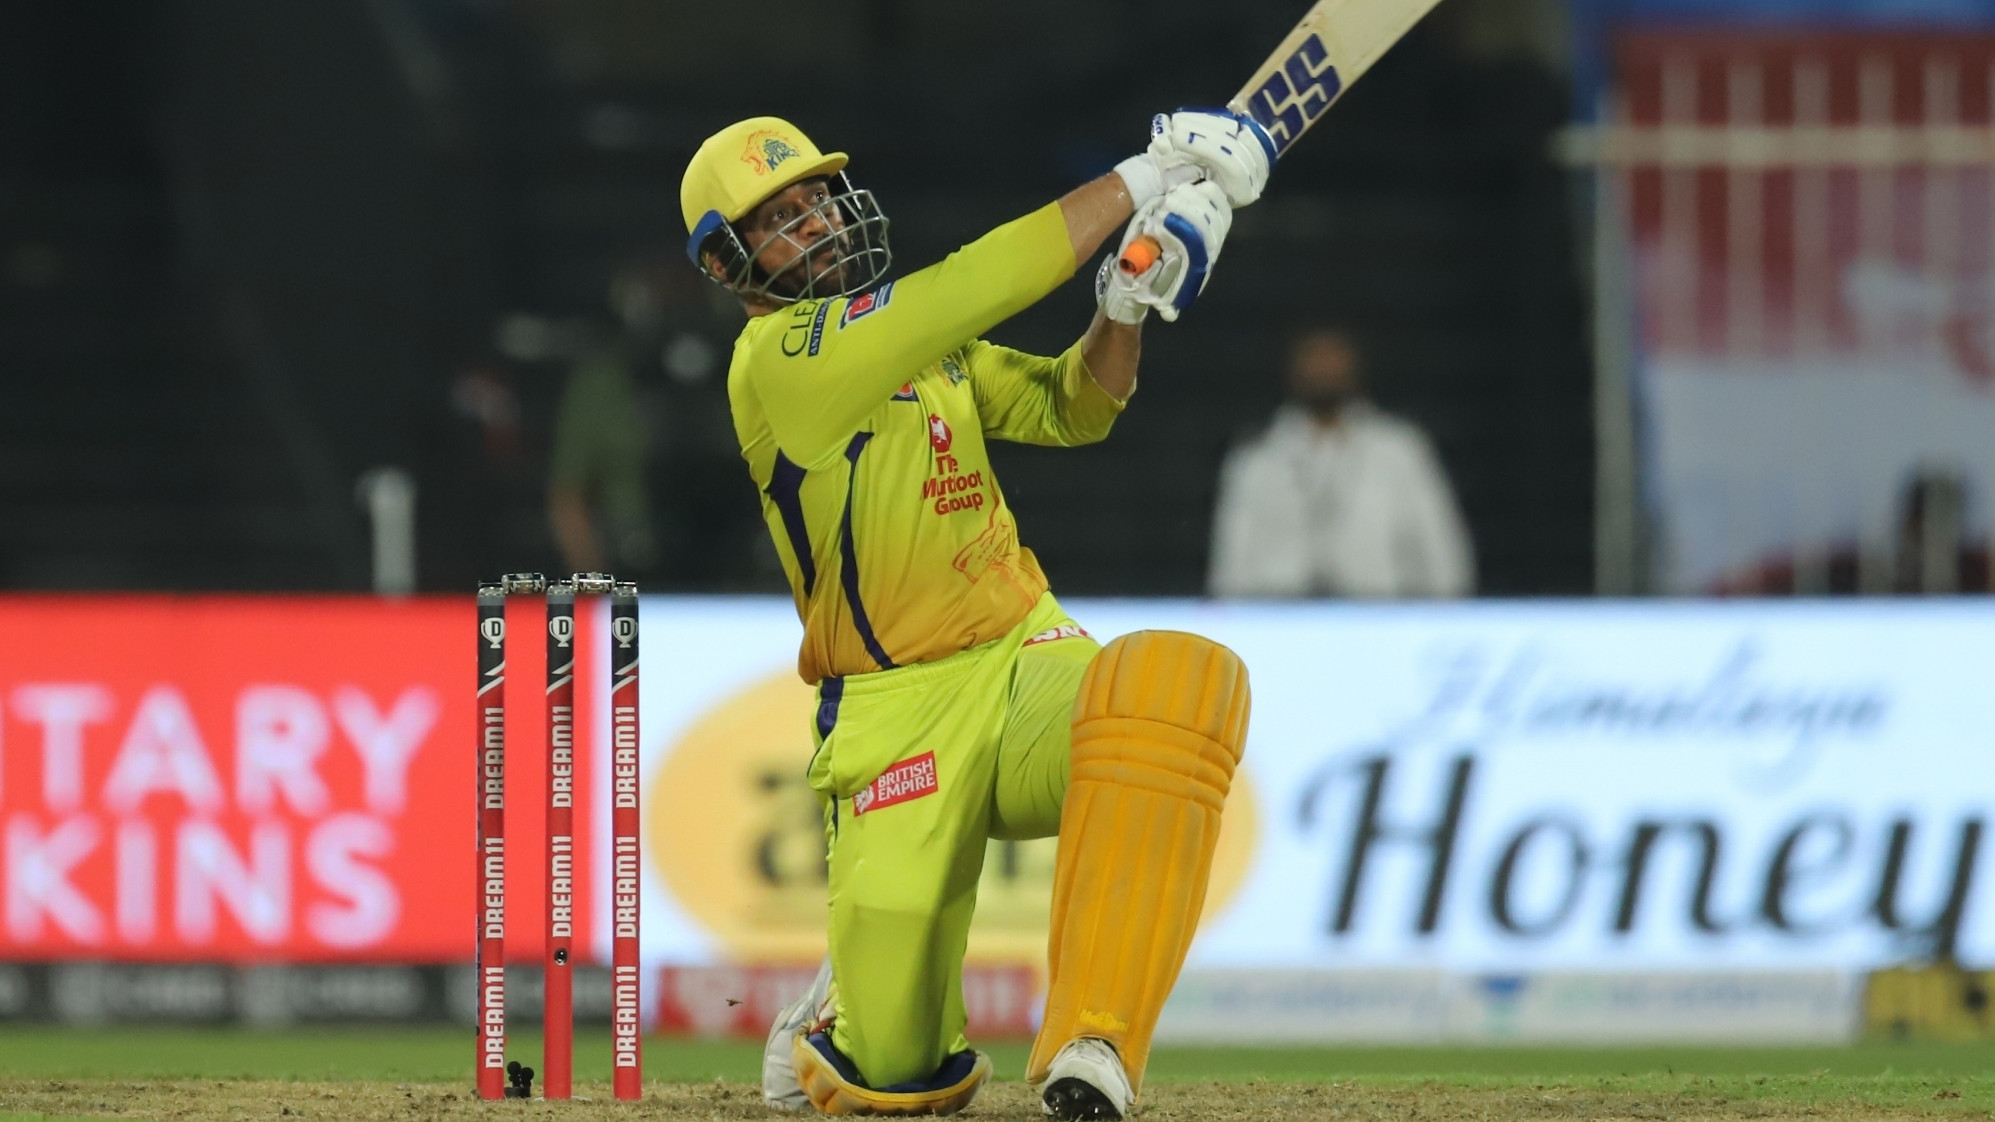 IPL 2021: MS Dhoni to return in action as CSK planning to start preparatory camp from March 11 - Report